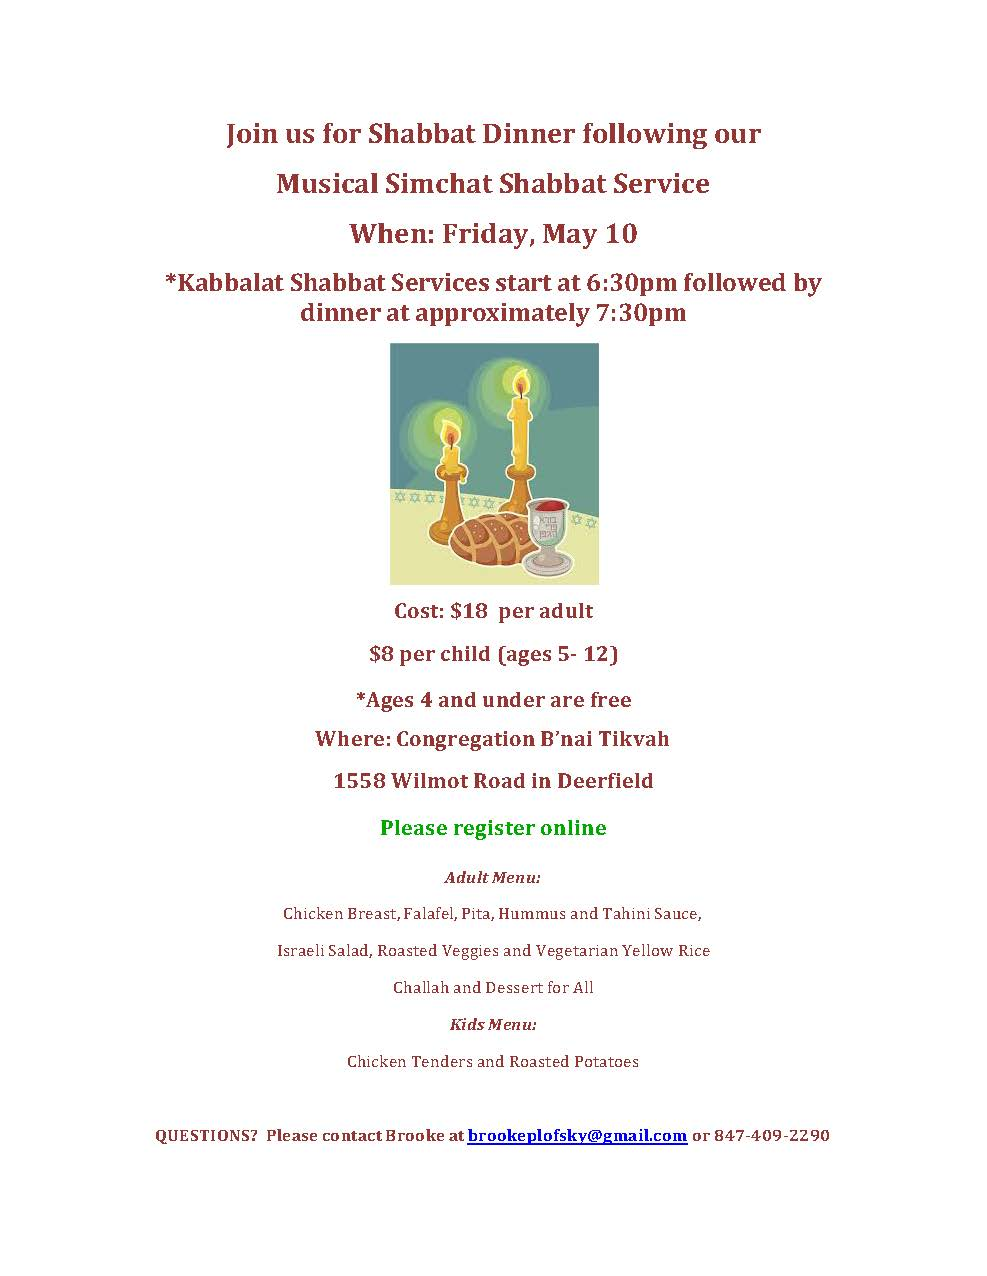 Musical Simchat Shabbat Service and Dinner